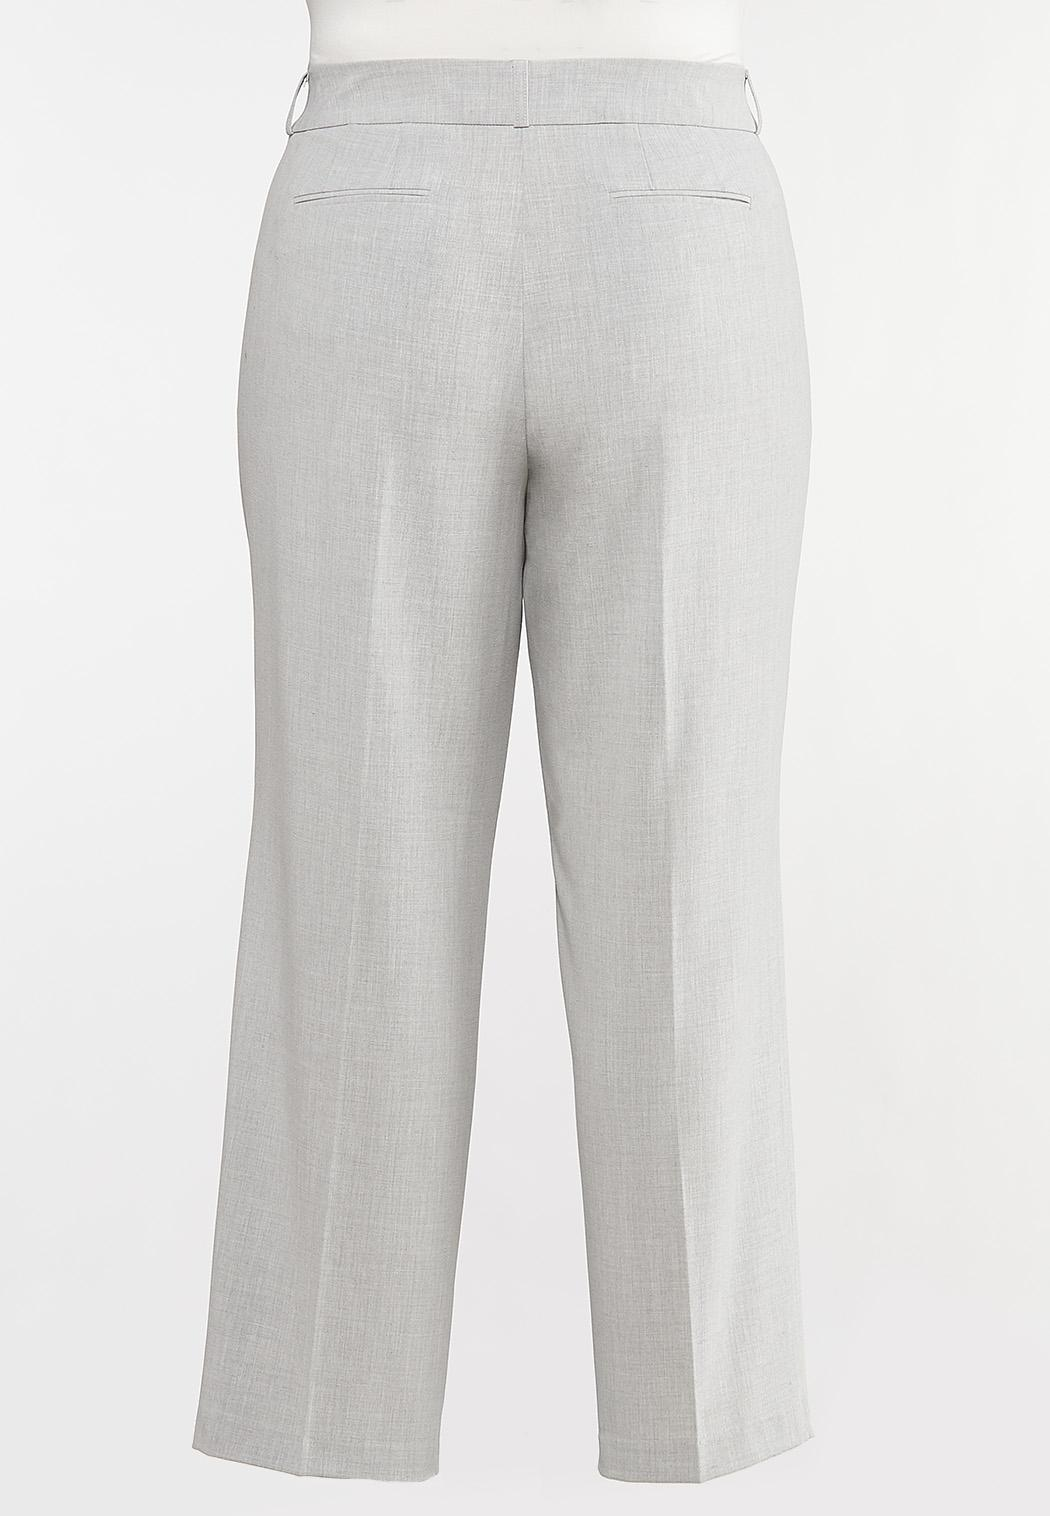 Plus Size Gray Trouser Pants (Item #44080172)